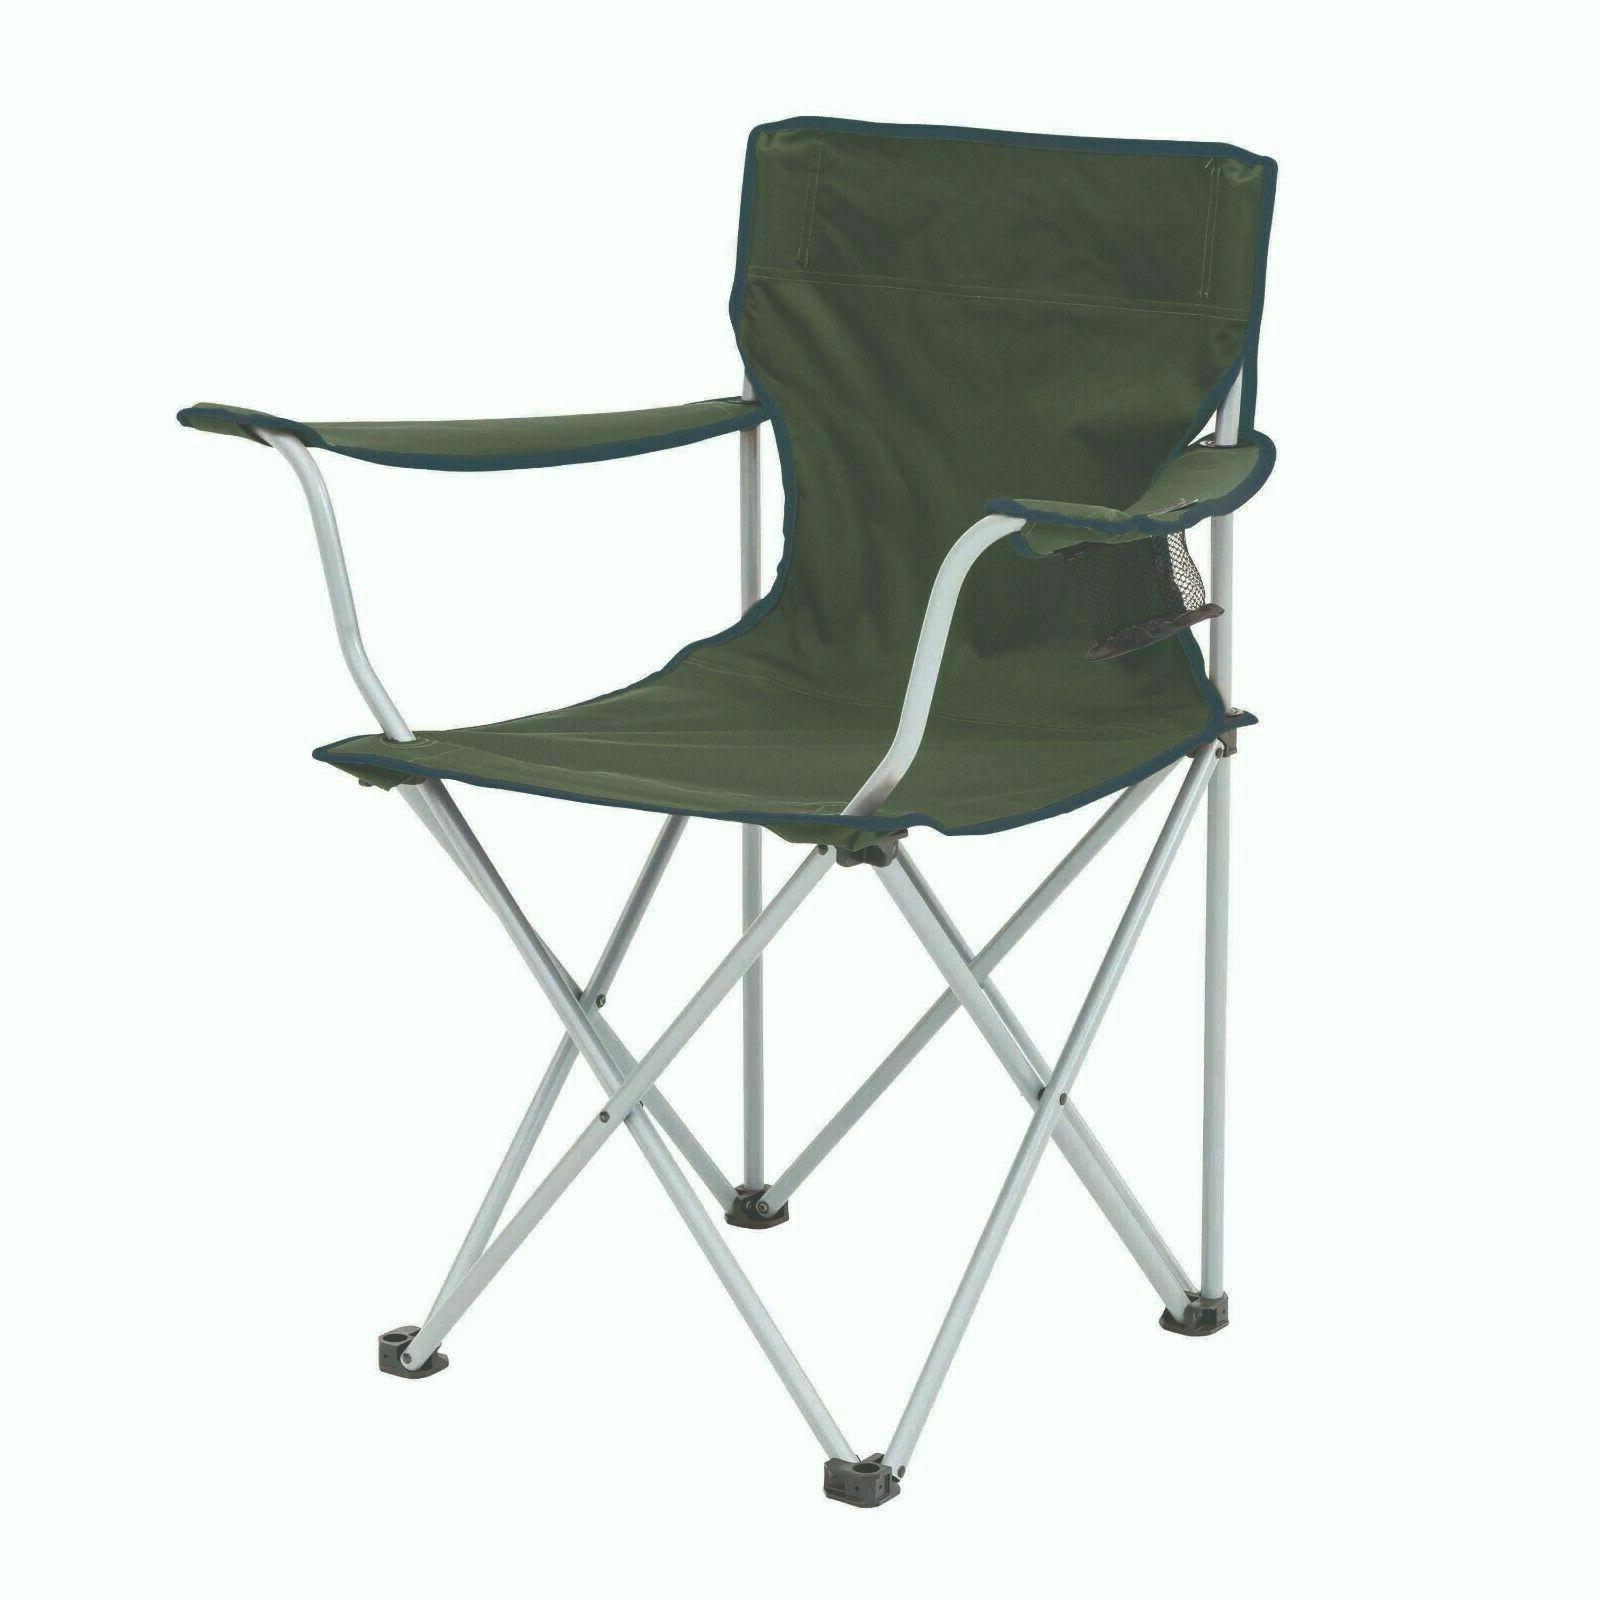 🔥Ozark 6 Piece Combo,4-Person Instant Tent,Chairs,Sleeping